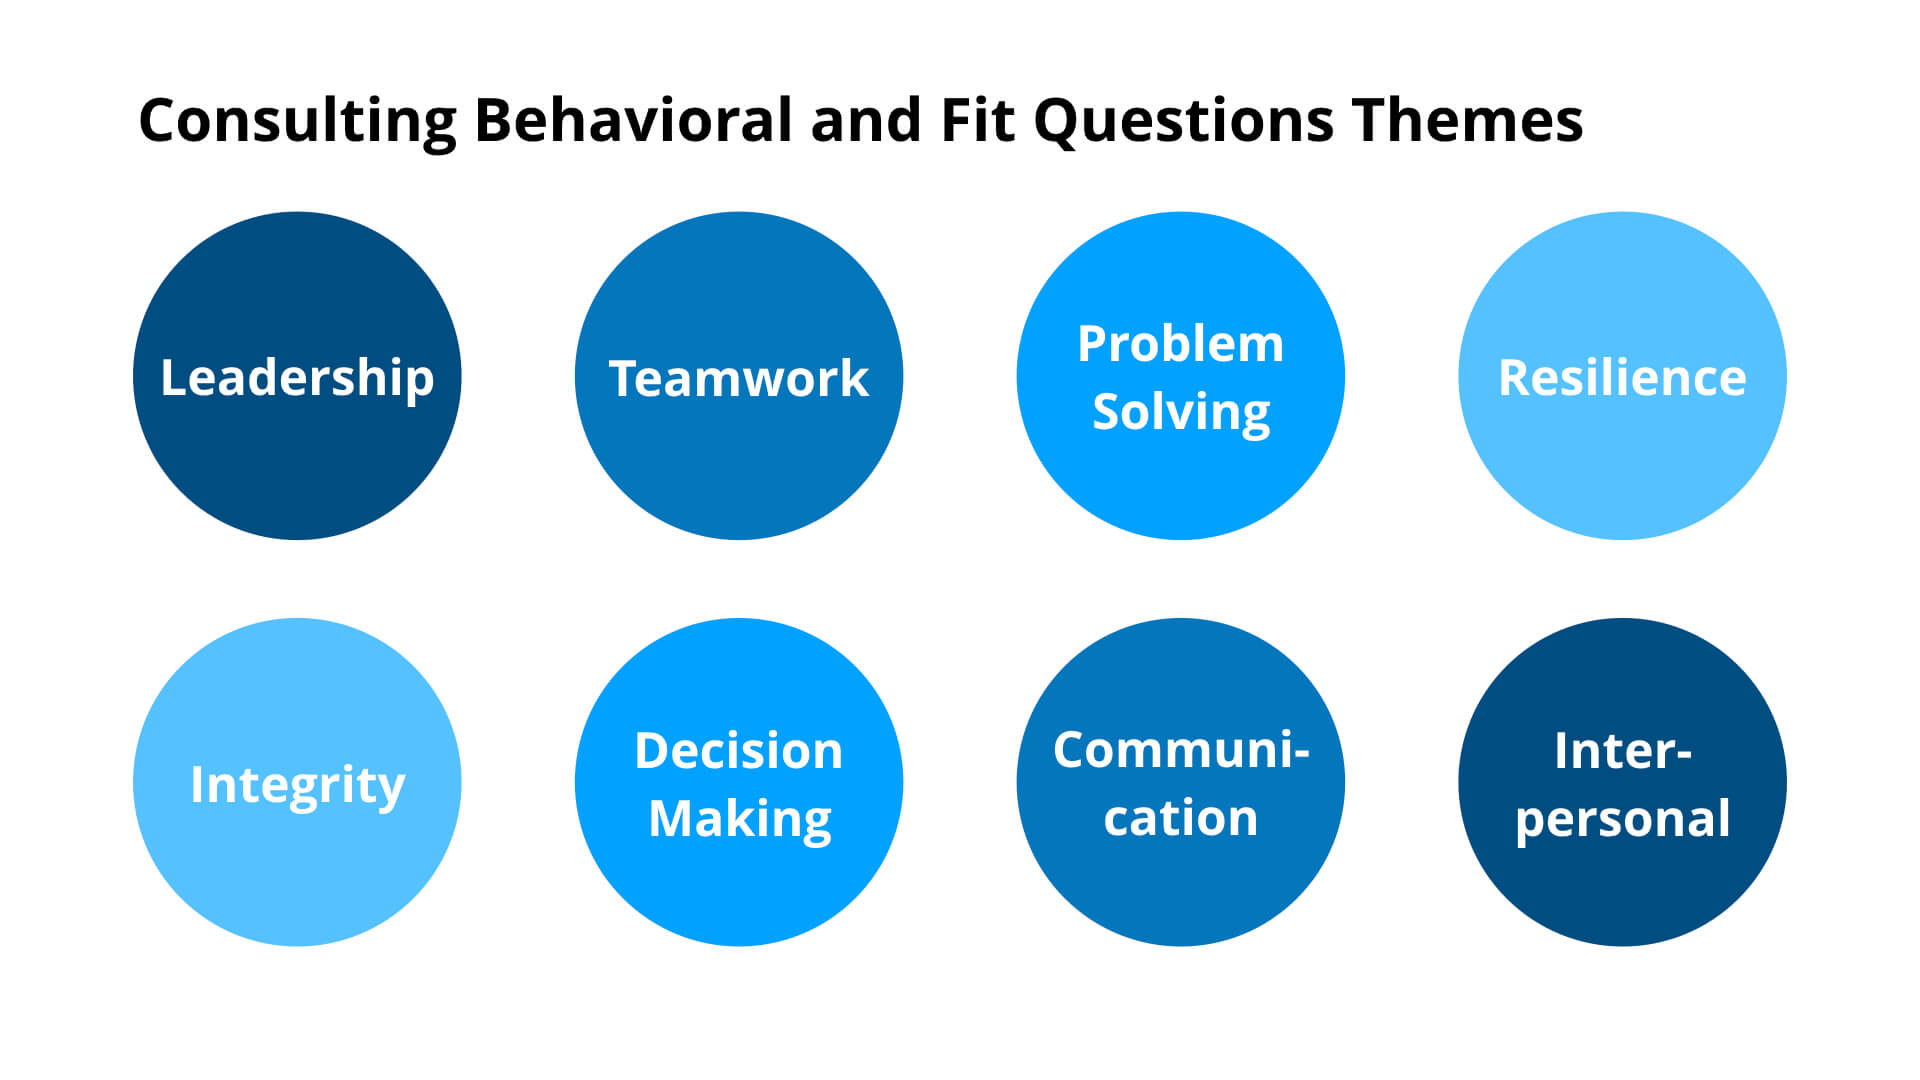 Consulting Behavioral and Fit Interview Question Types